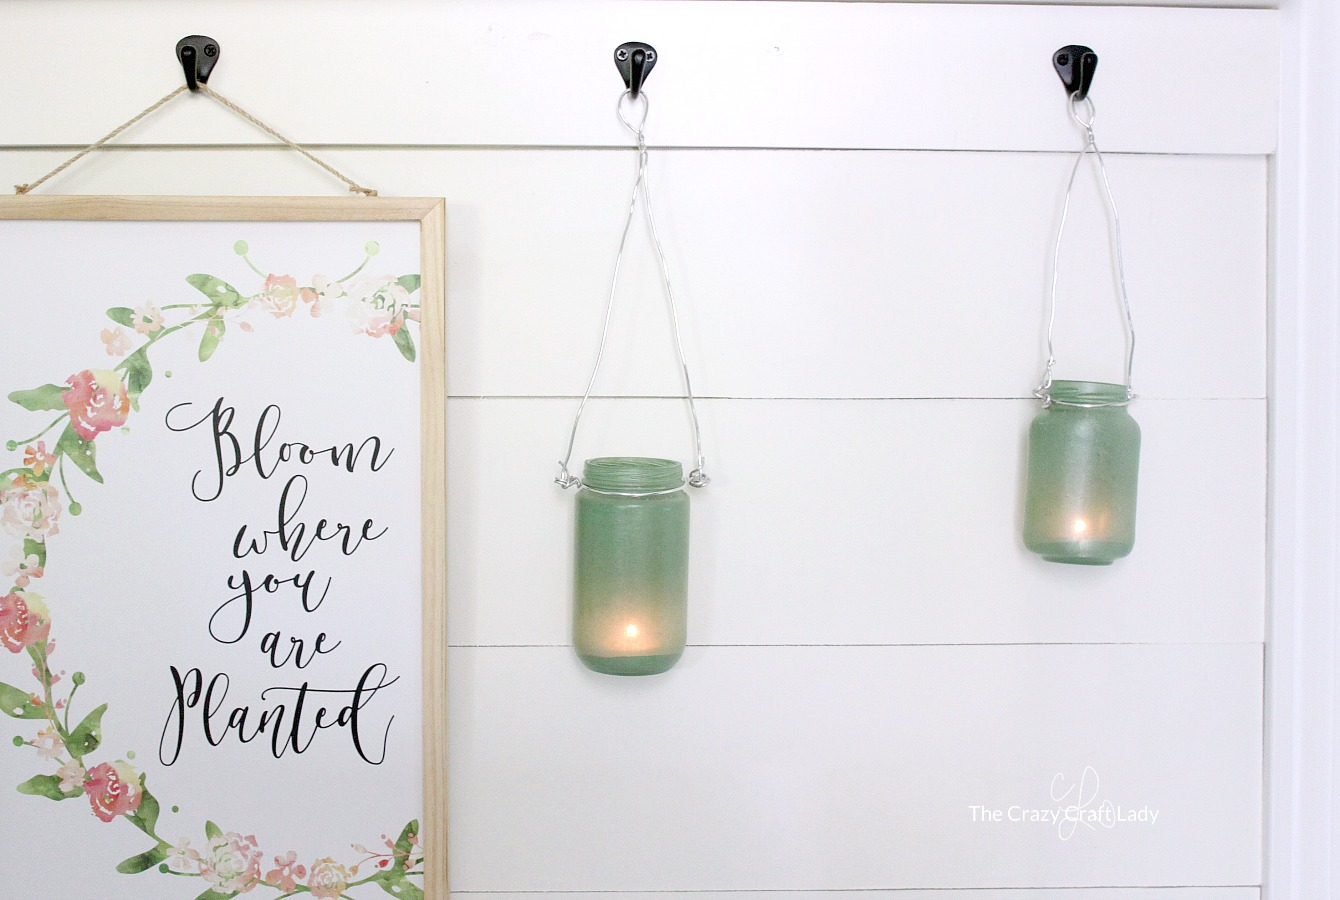 Did you know that you can turn just about any glass surface into a sea glass craft using sea glass spray paint? Follow this simple tutorial to make sea glass lanterns from empty glass jars.